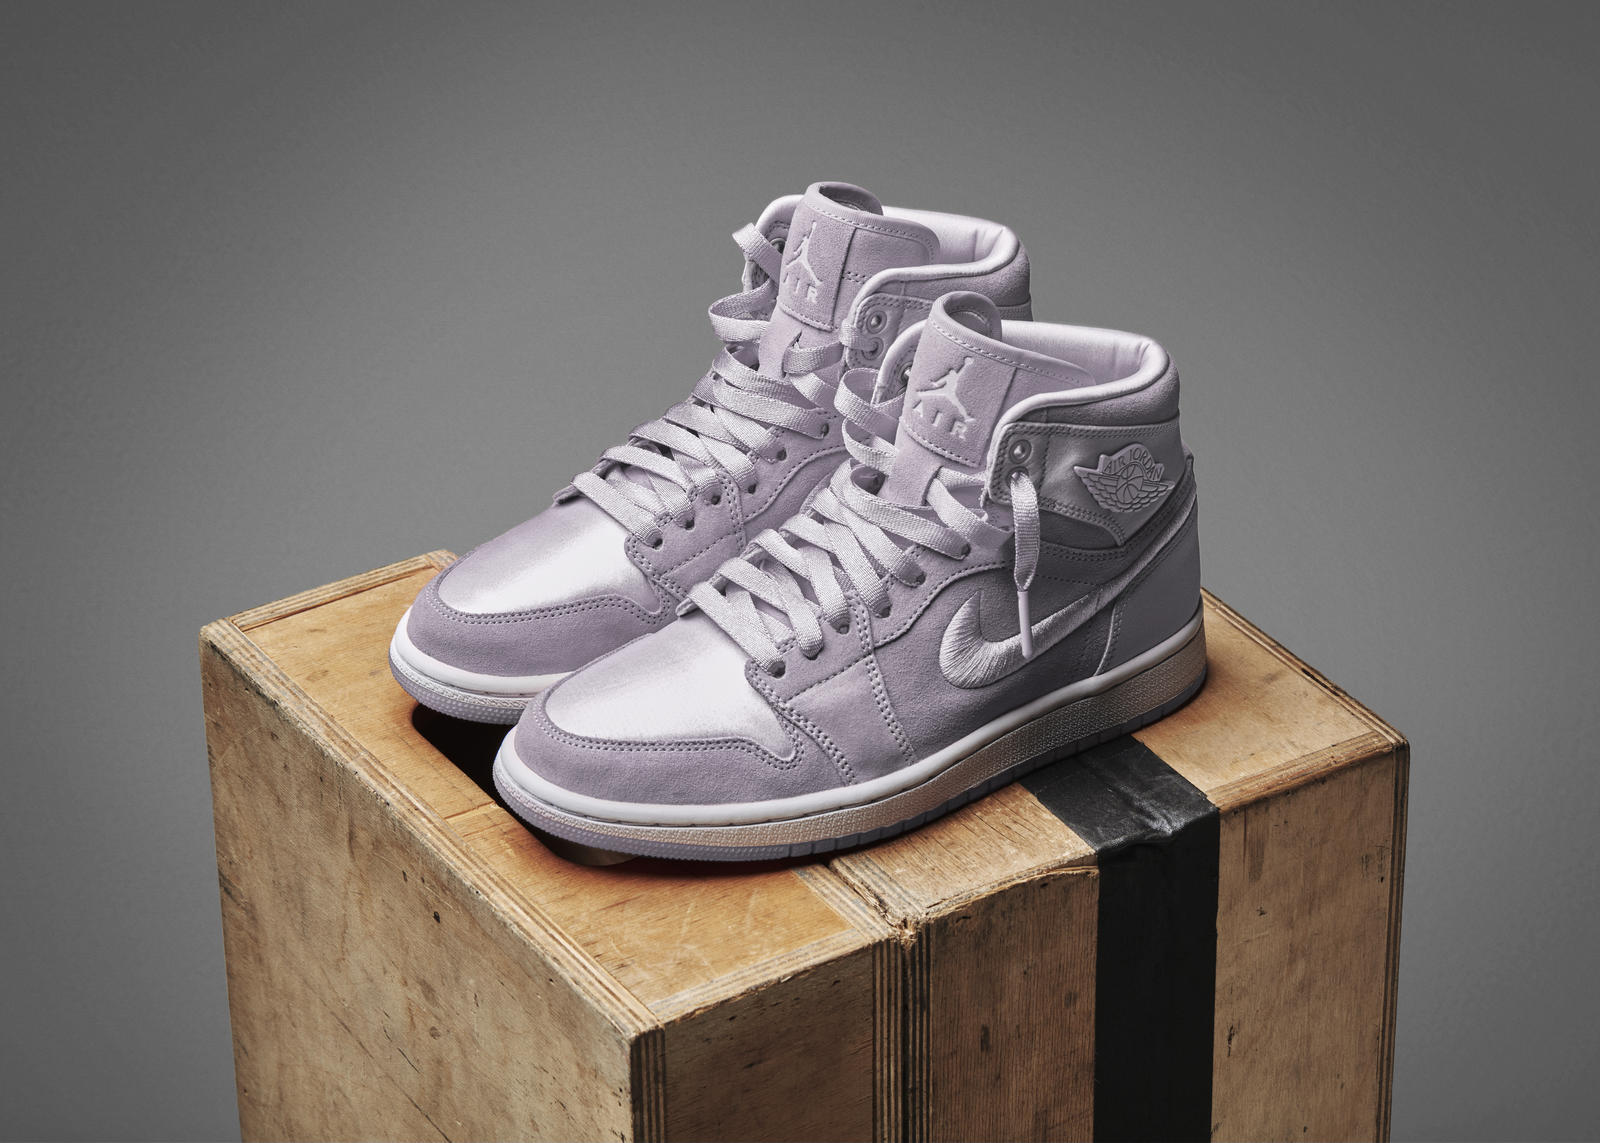 Jordan Brand Reveals Spring 2018 Women s Collection - Nike News 35f4bff1ff